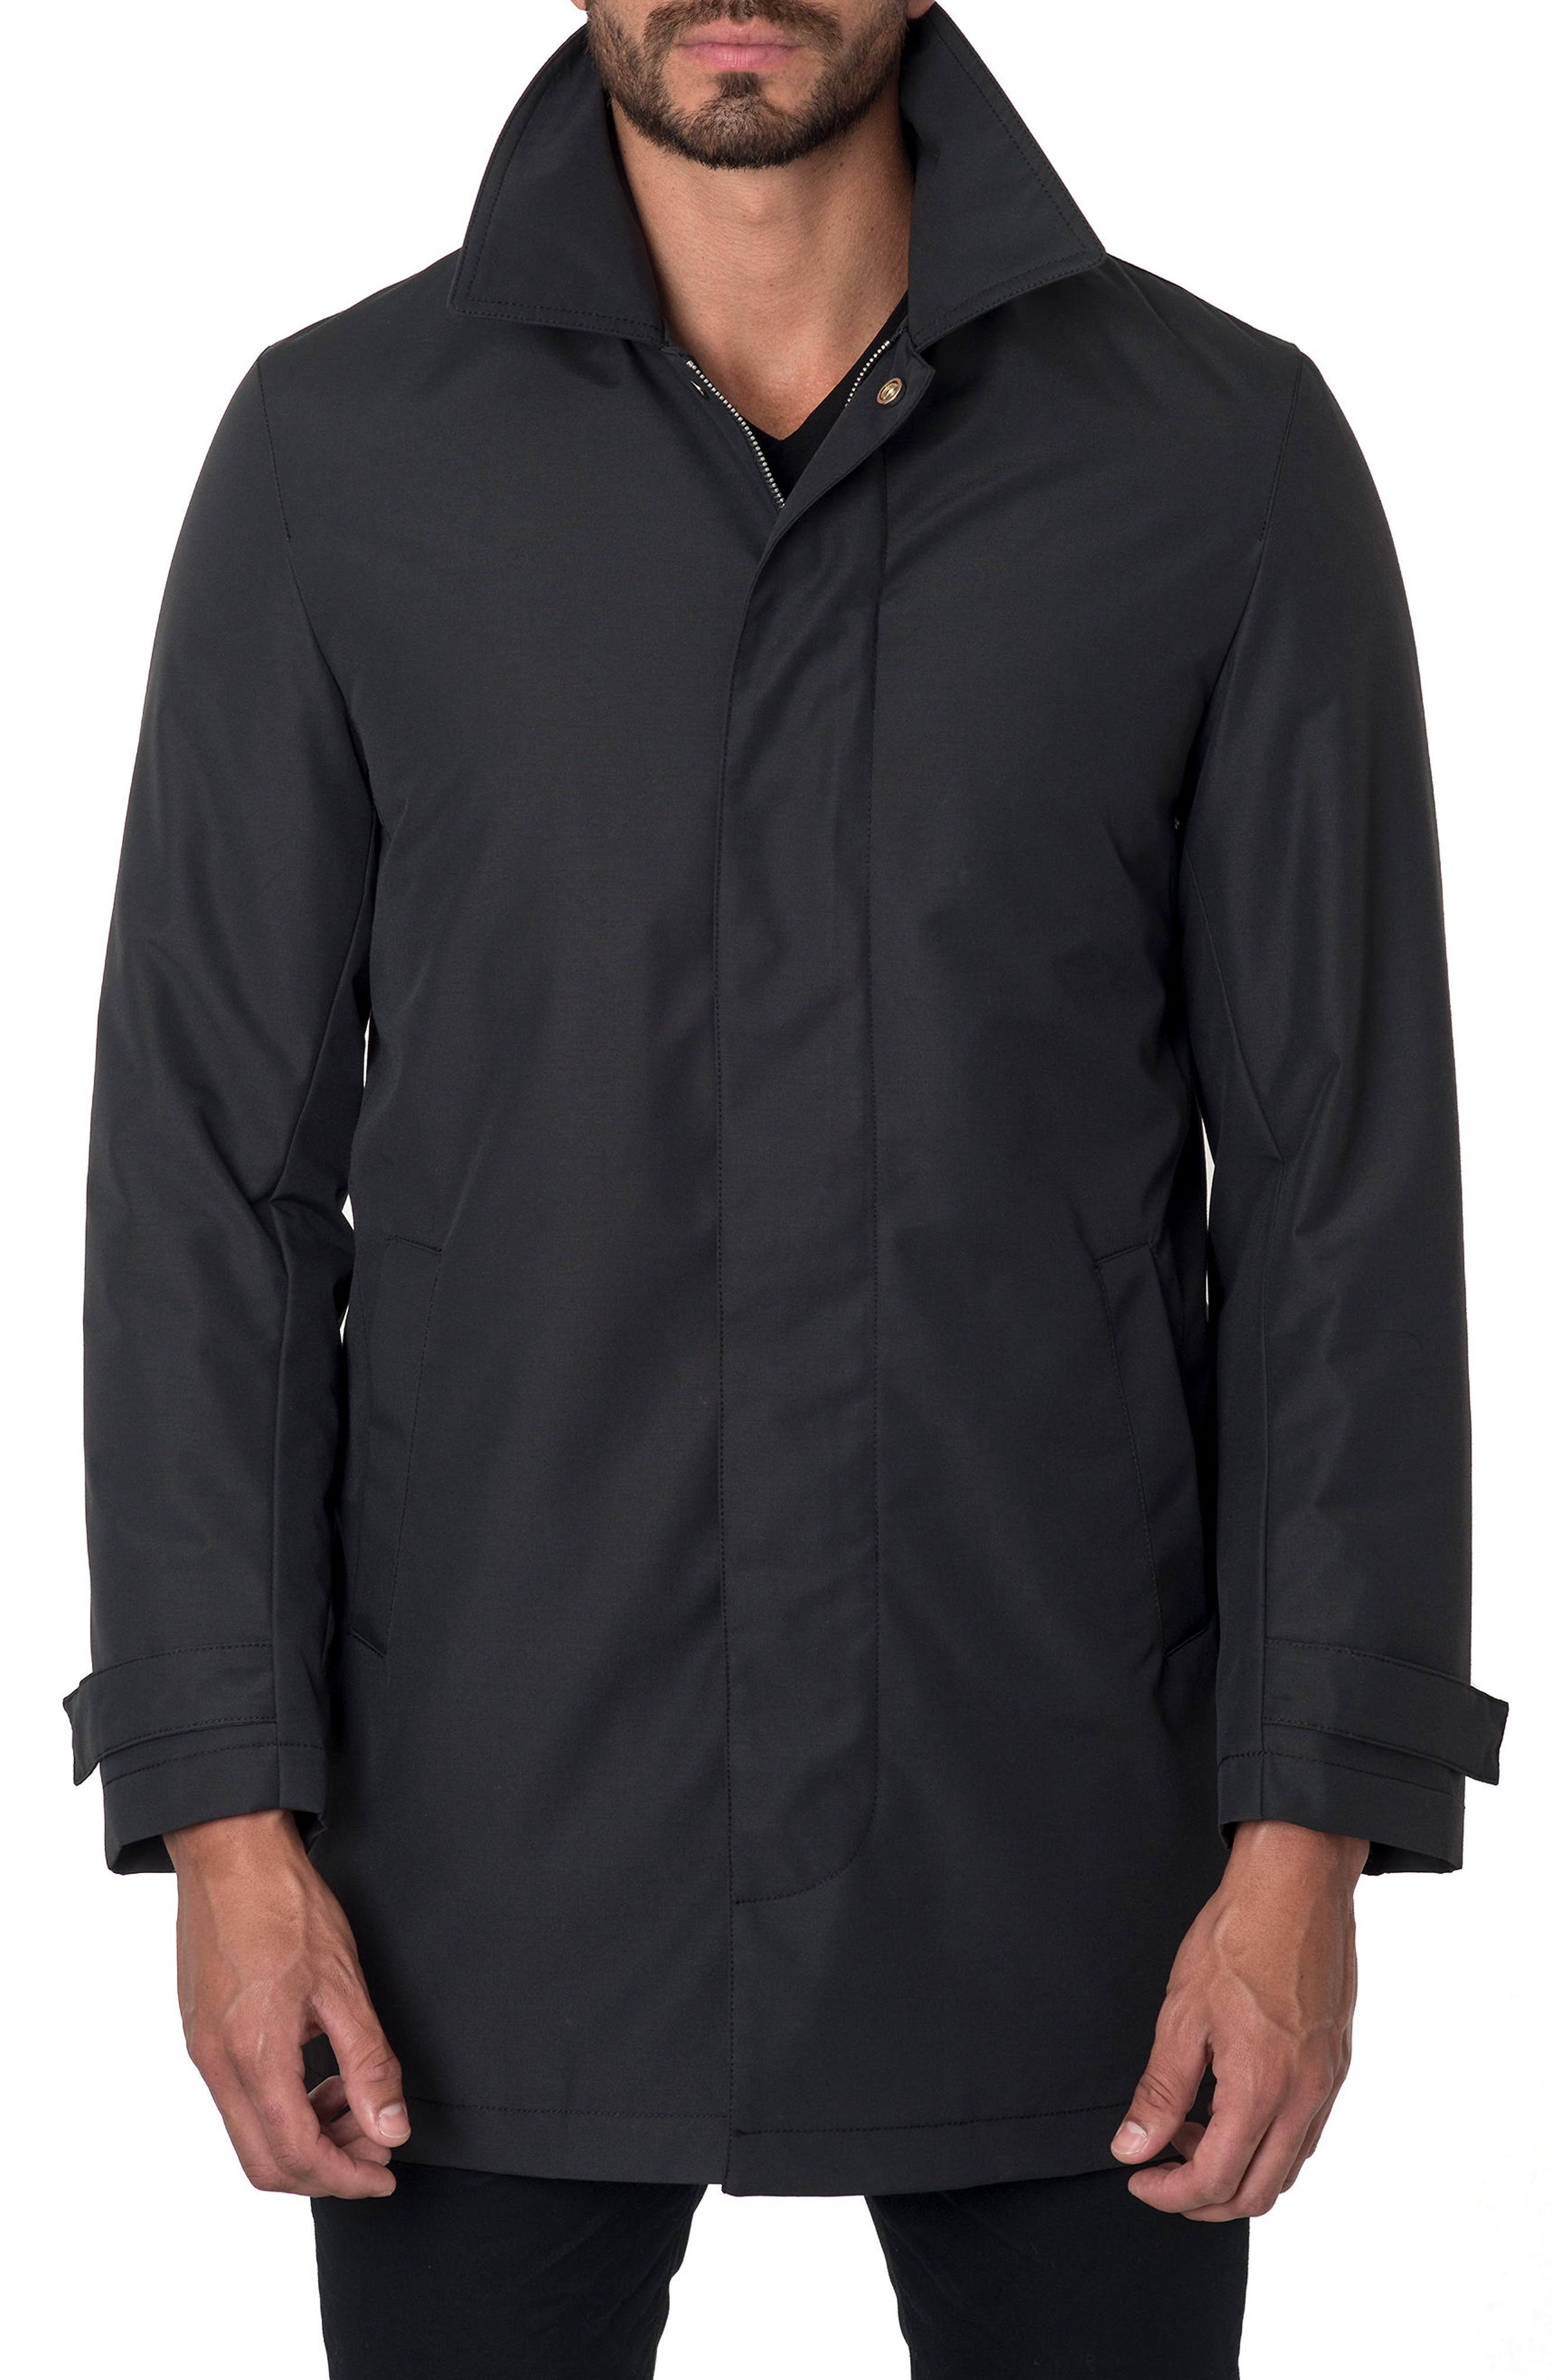 Water Repellent Jacket,                             Alternate thumbnail 2, color,                             001